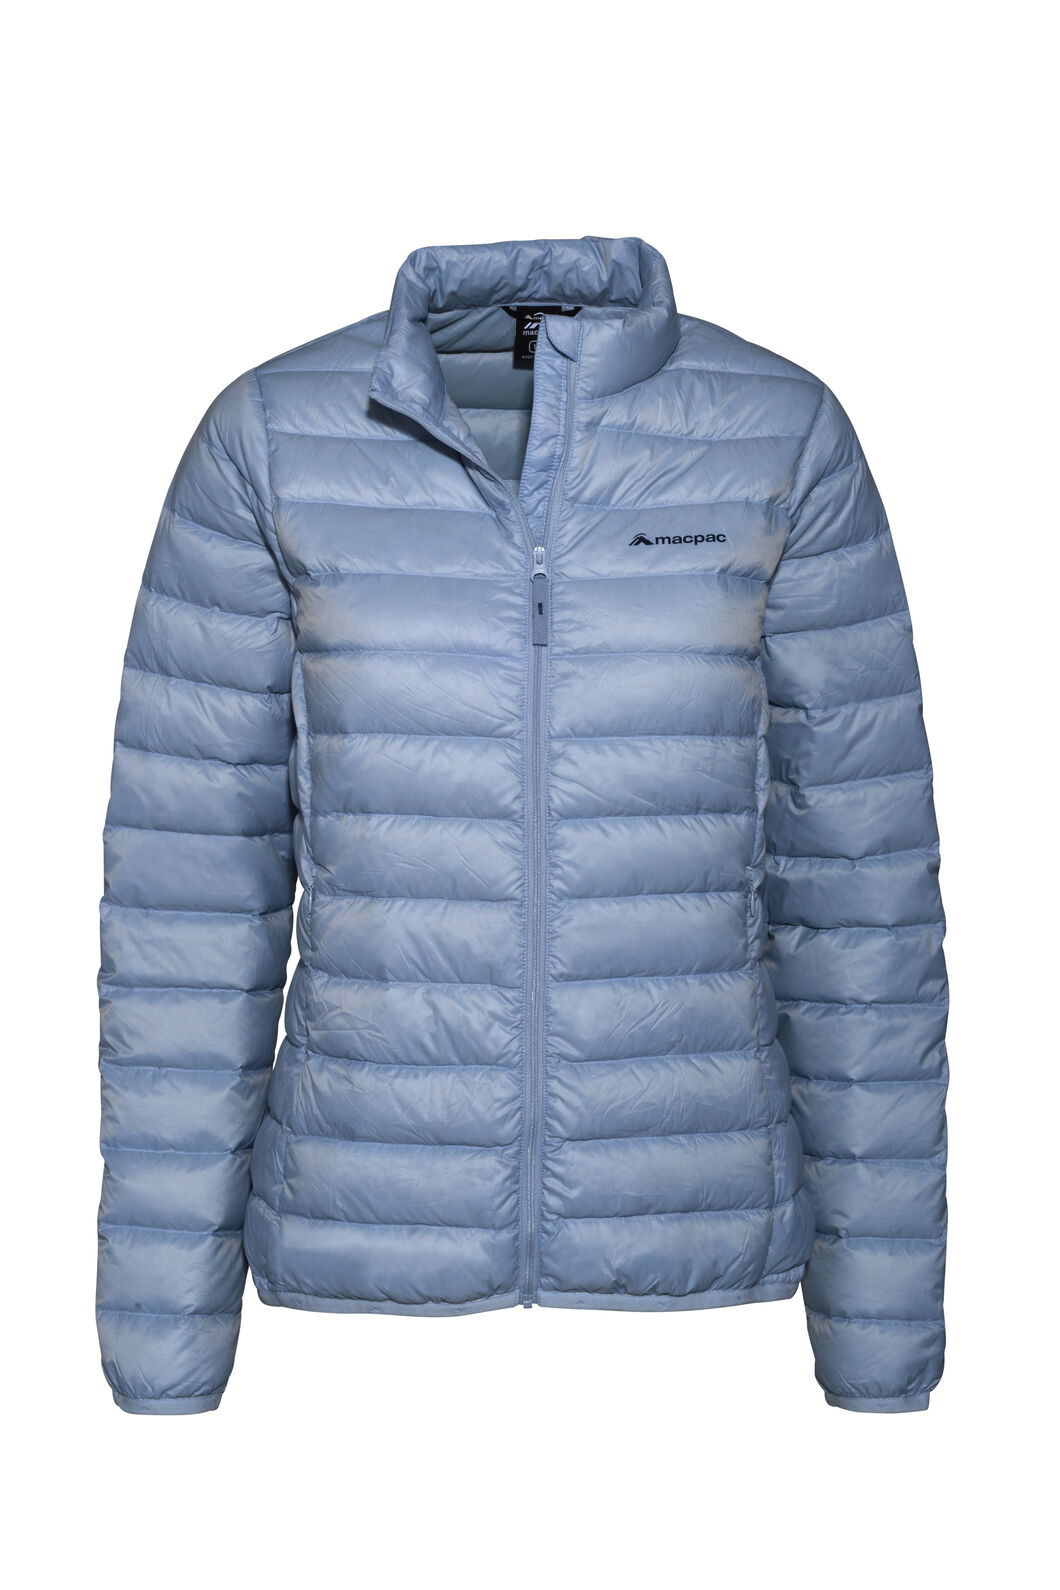 Macpac Uber Light Down Jacket — Women's, Blue Fog, hi-res